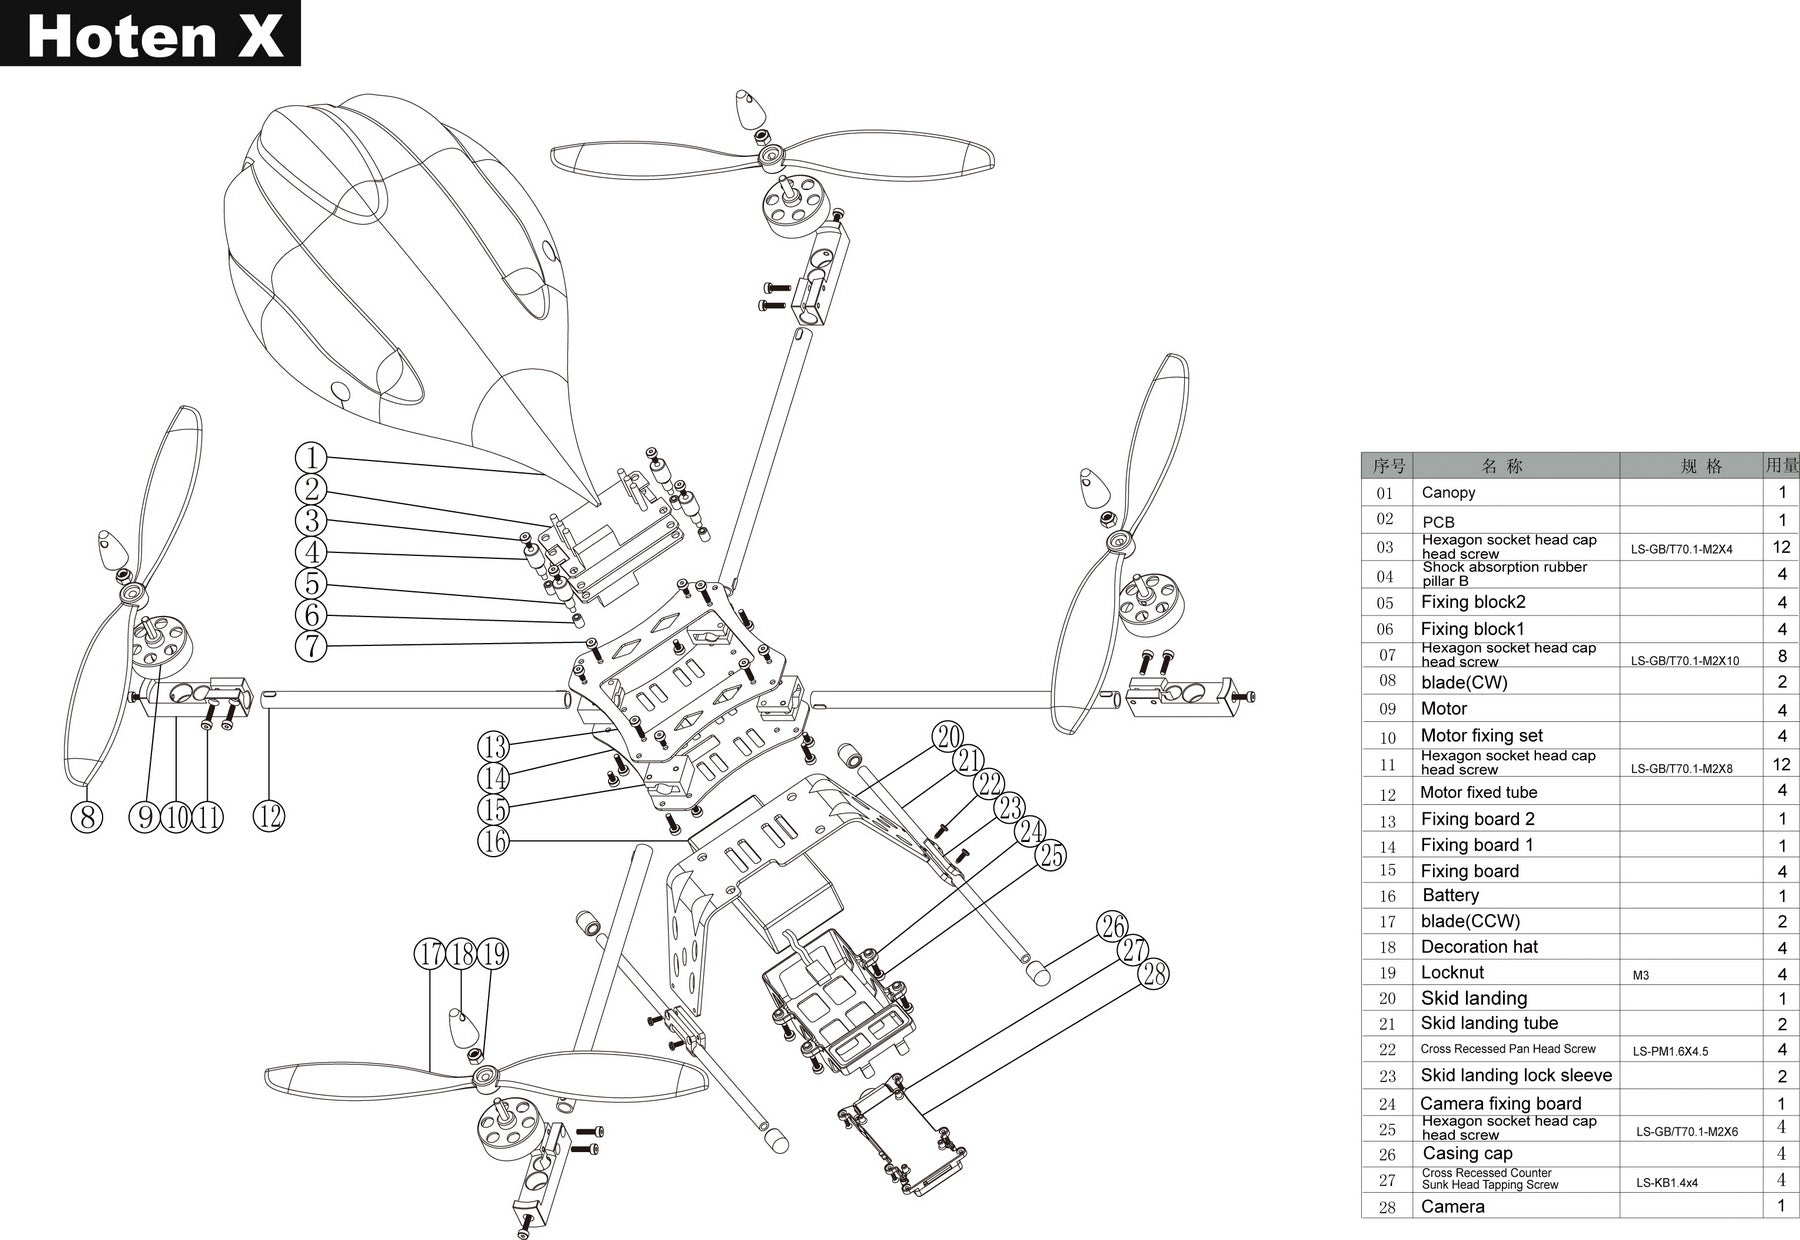 MyRCVision.com — Hoten-X Exploded Parts Diagram